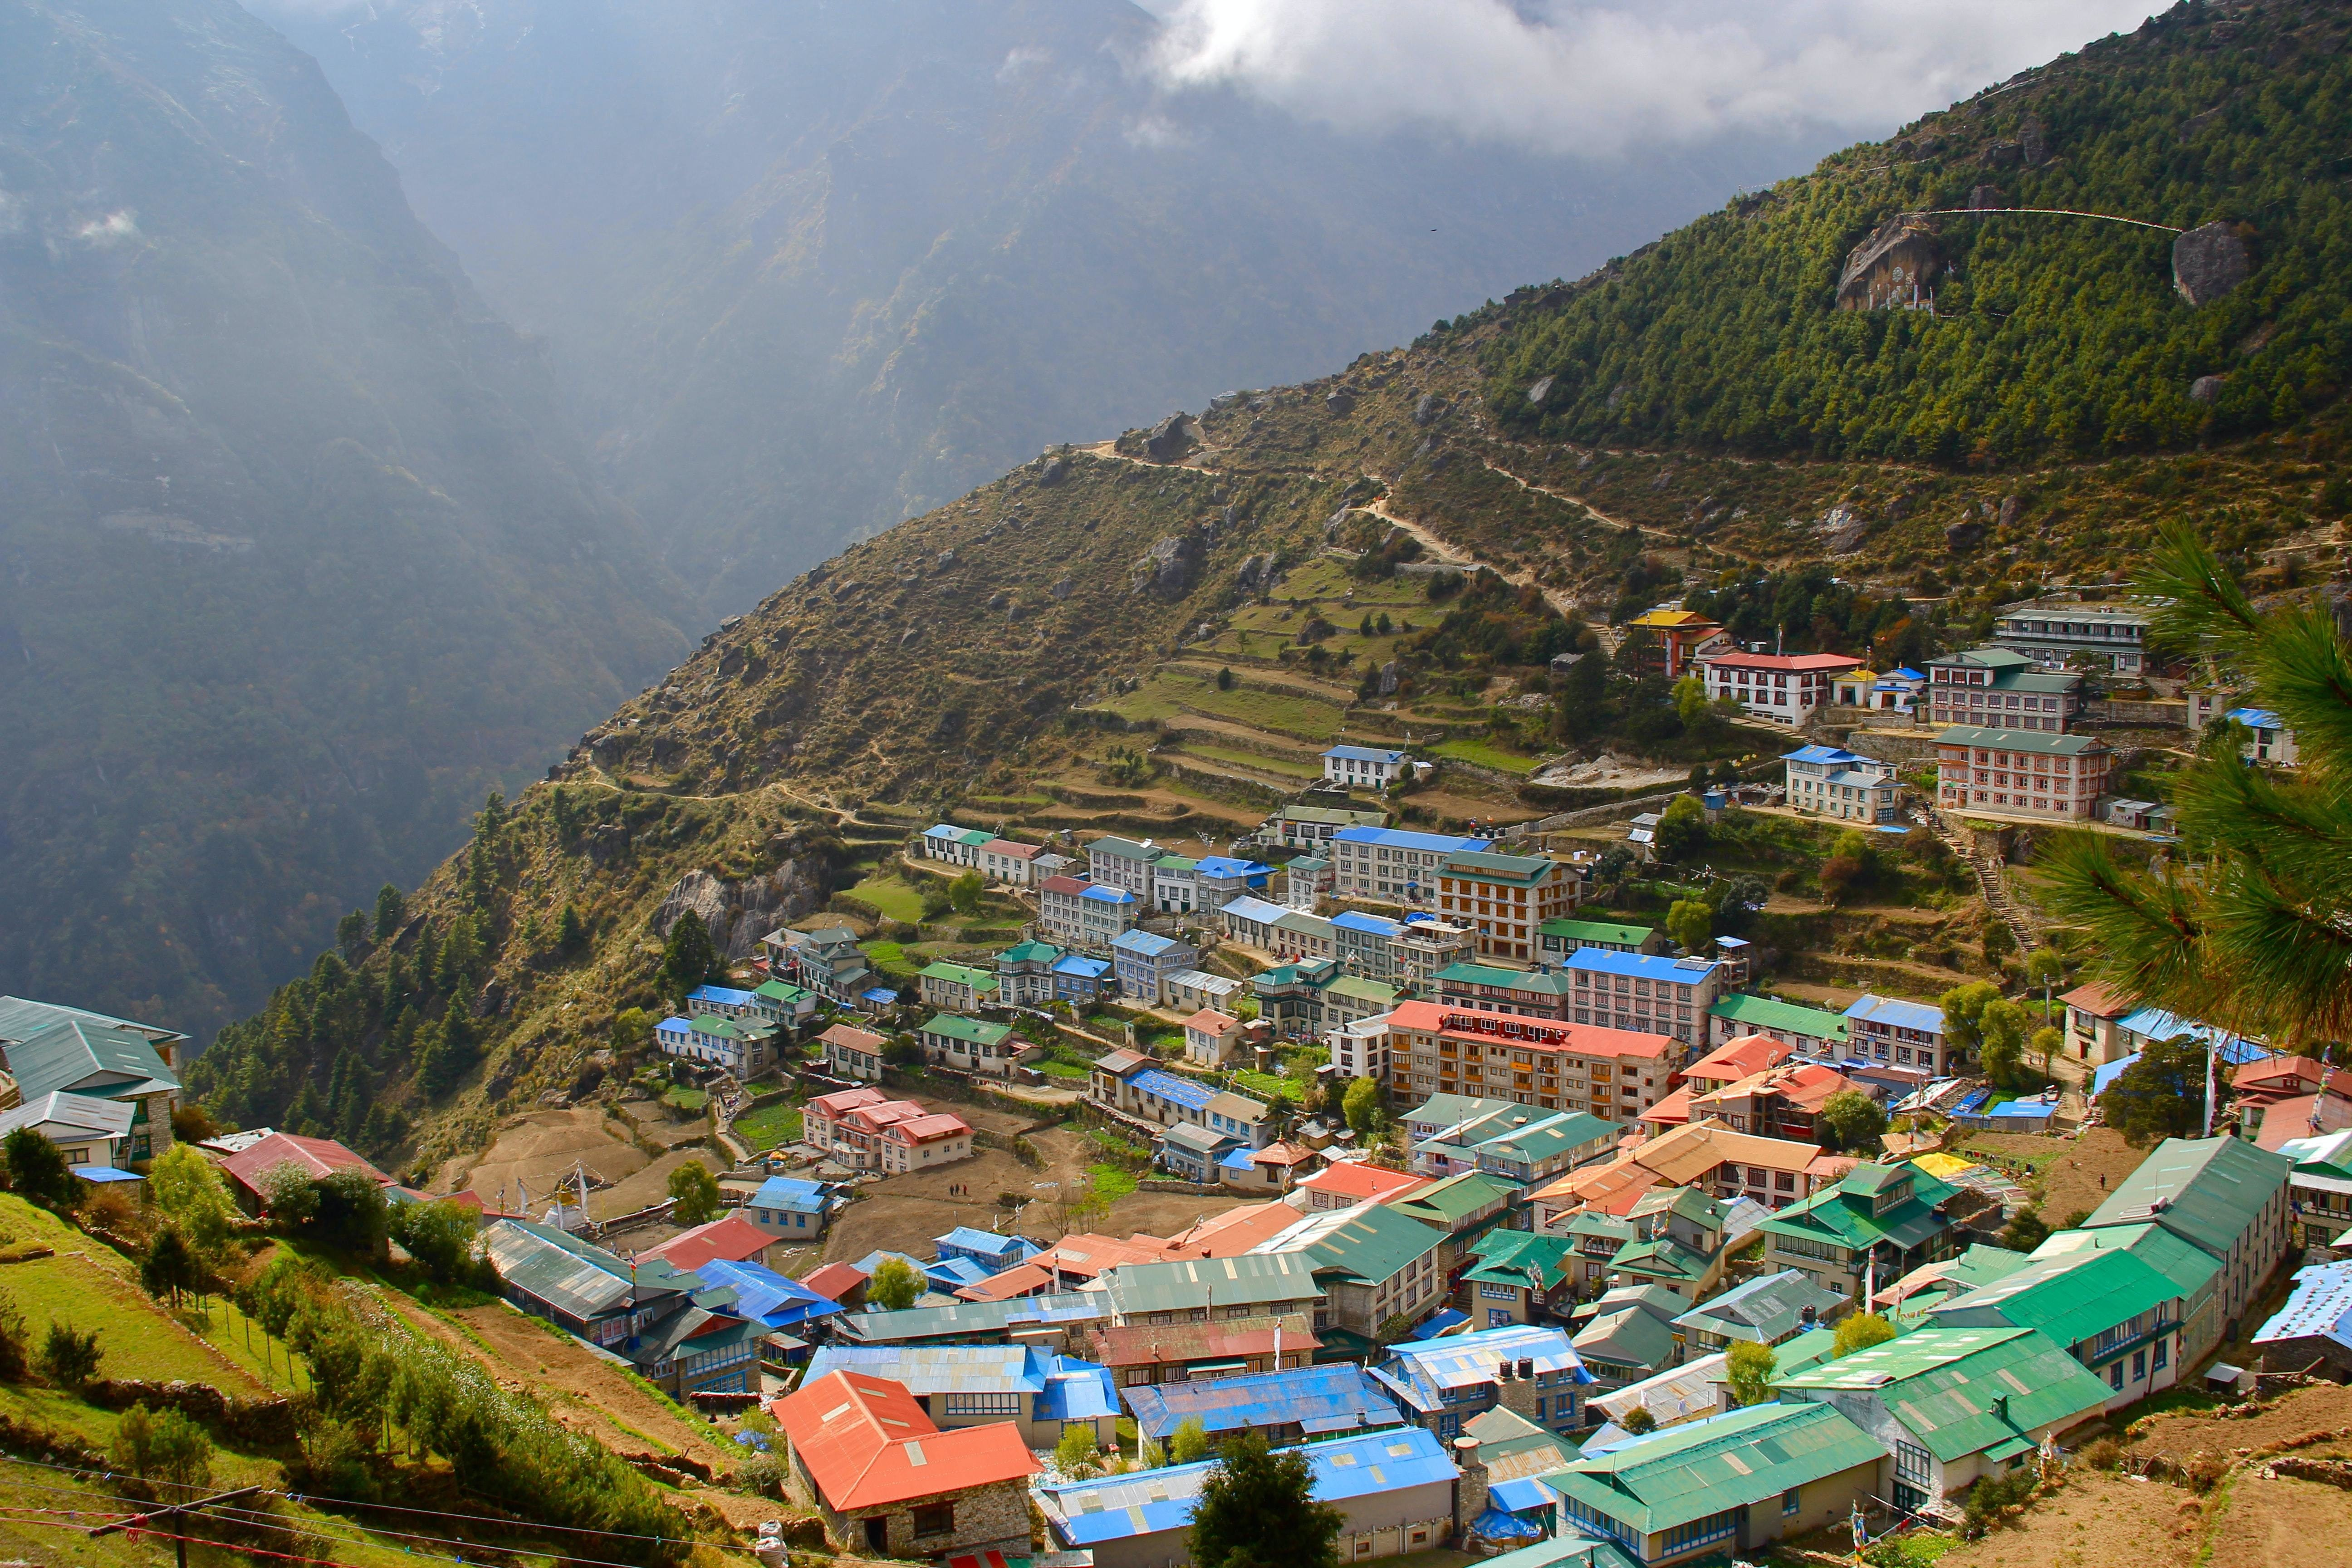 Namche Bazar, Namche, Nepal; rural, mountainside village; blue, green and red rooftops.